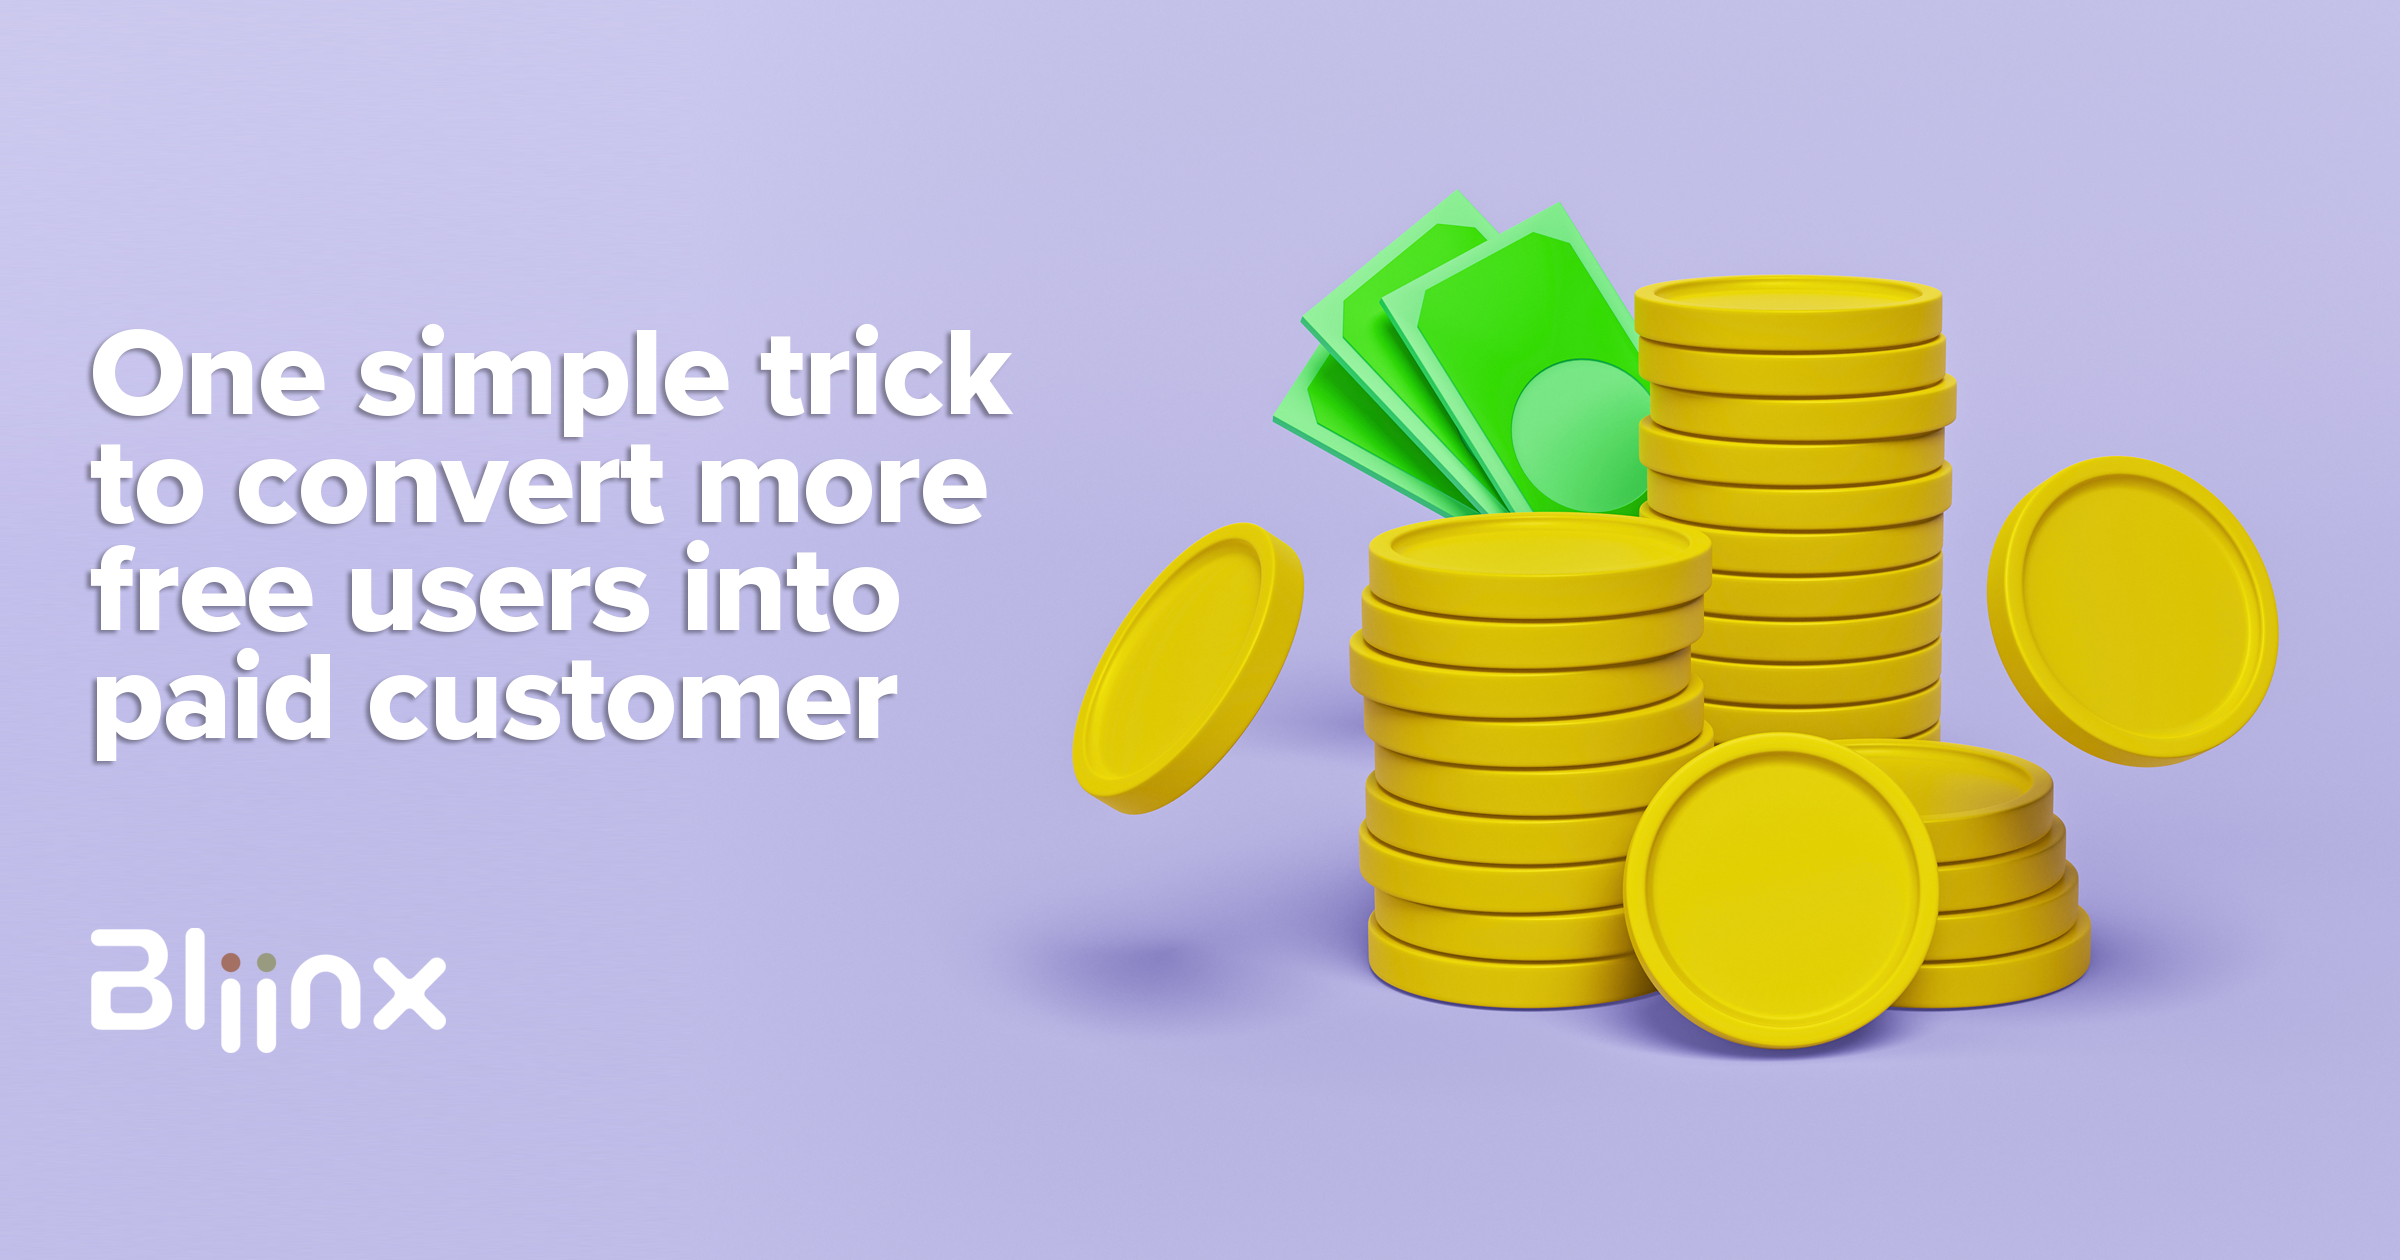 One trick to boost paid conversions